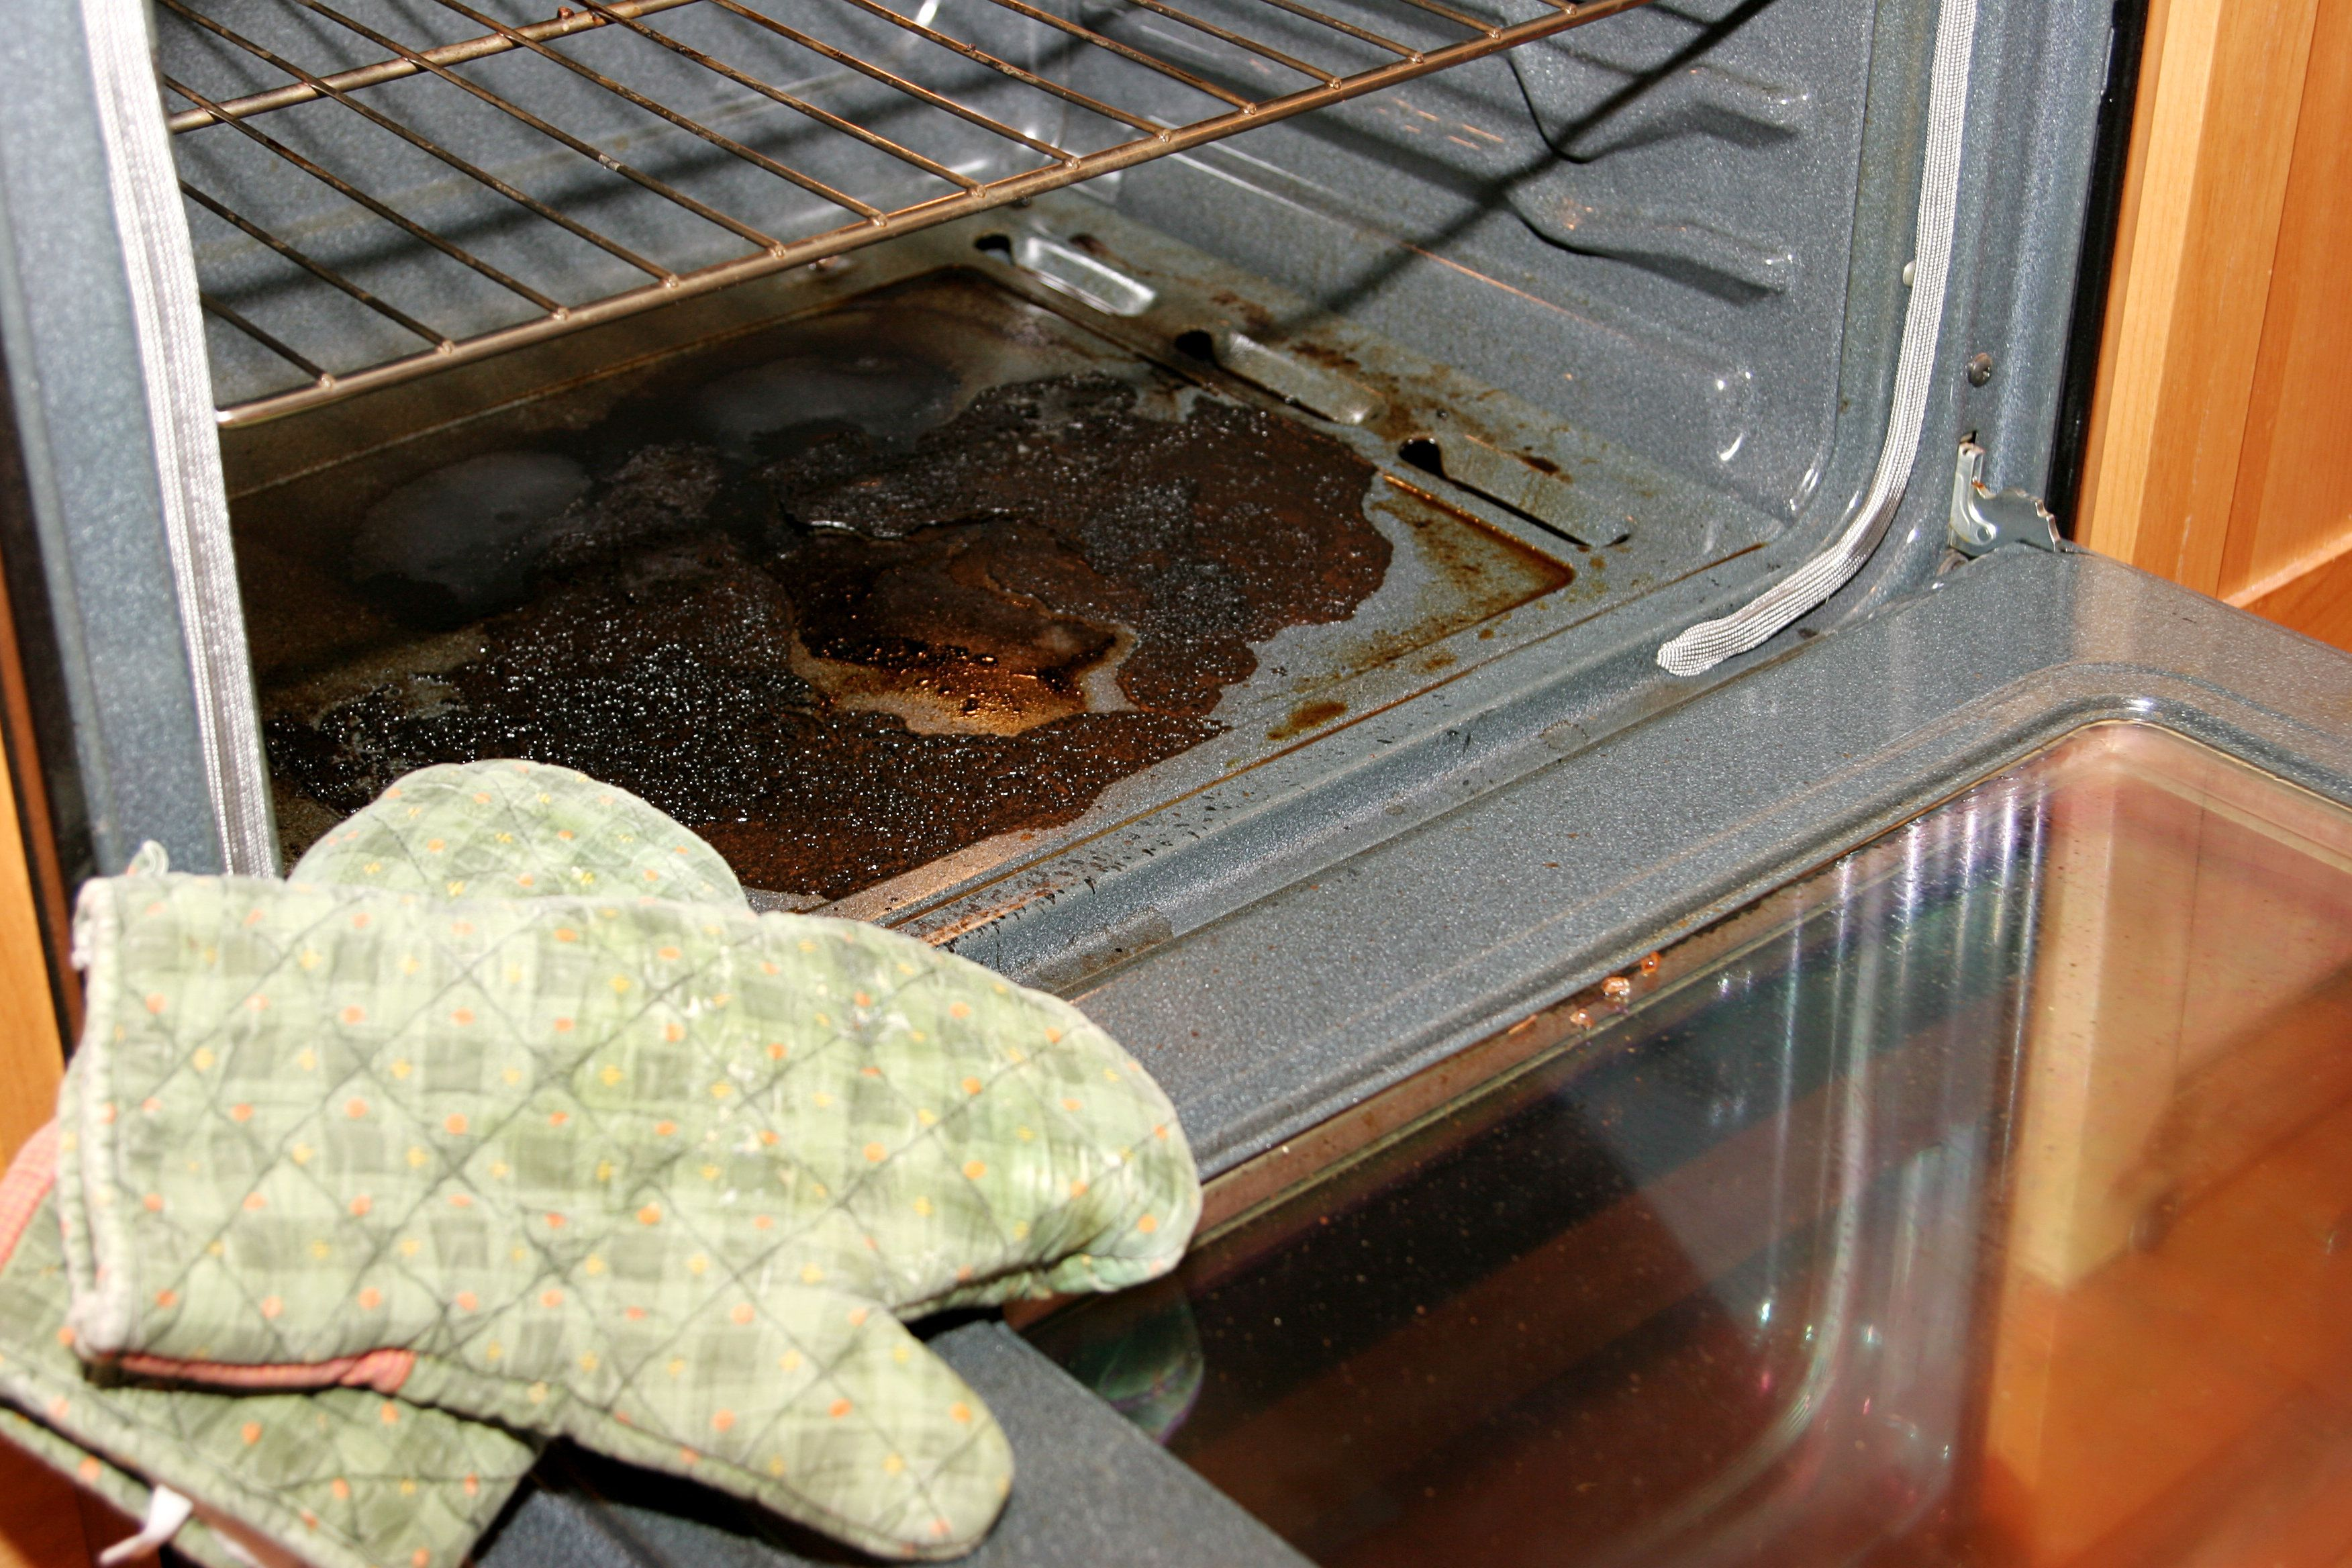 Woman Shares Unusual Life Hack For Cleaning An Oven